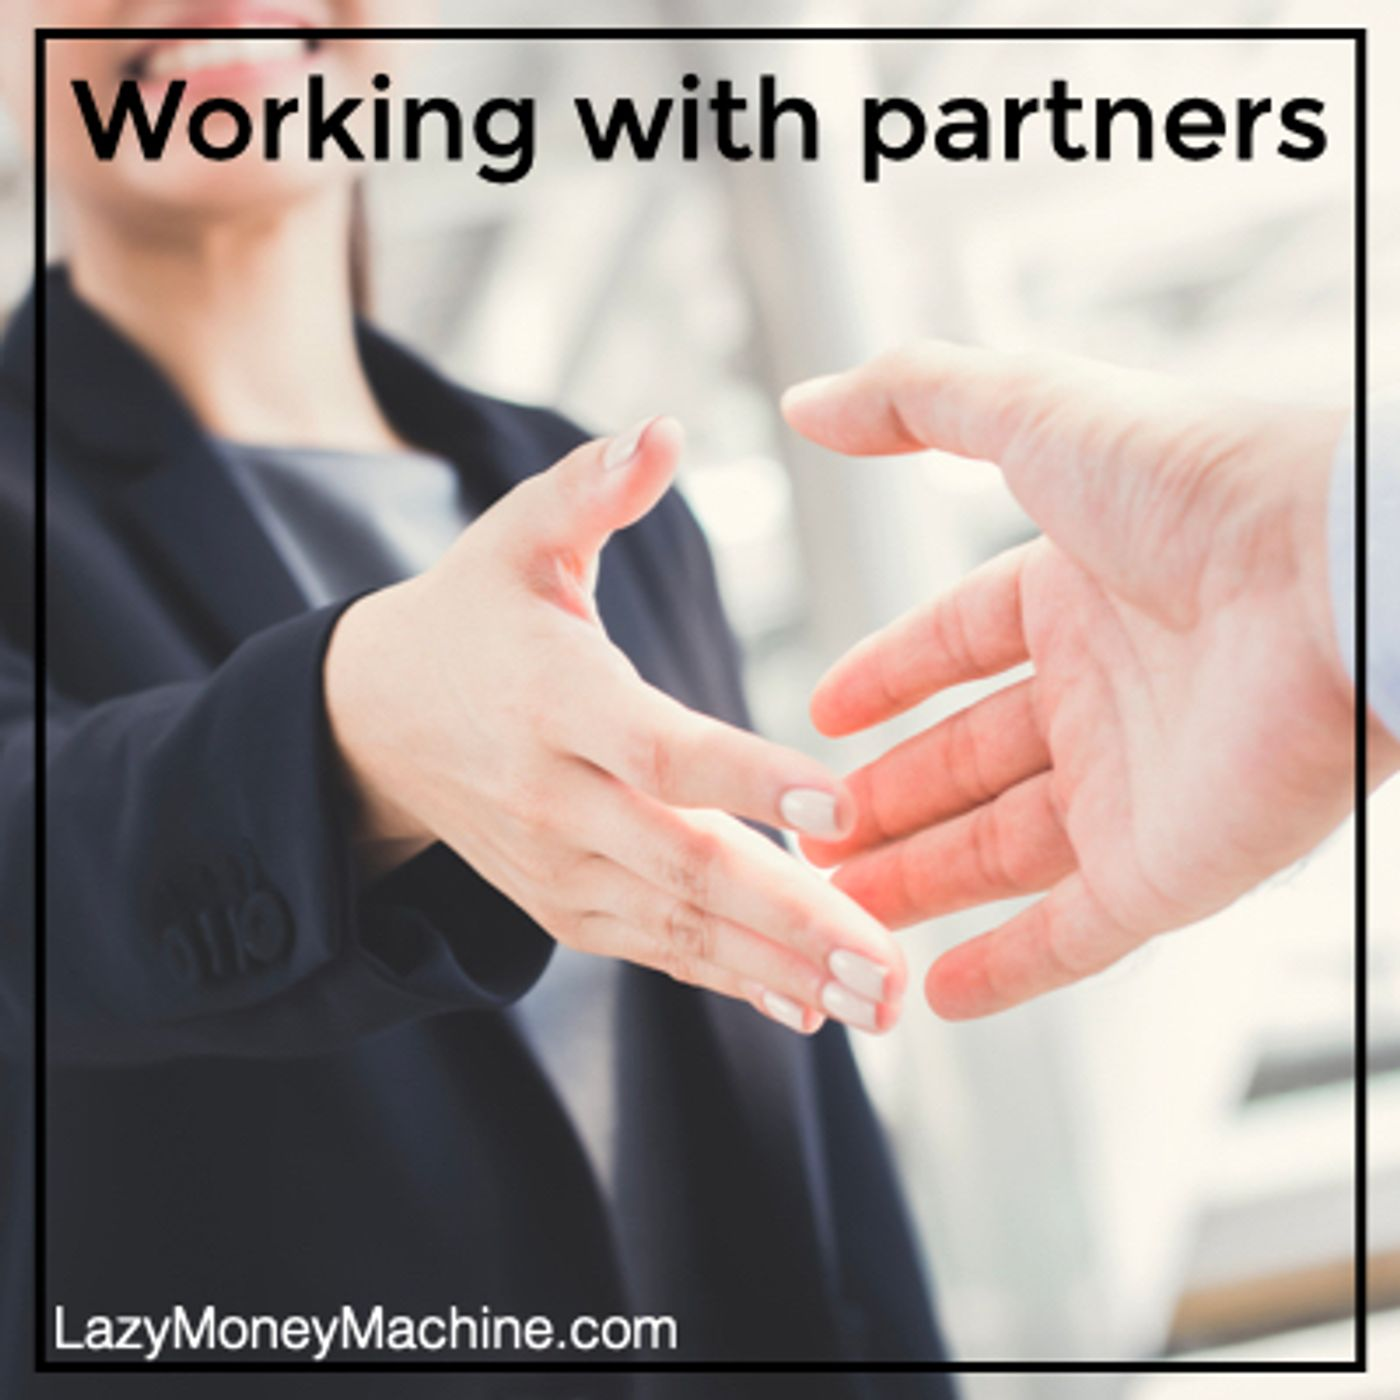 58: Working with partners